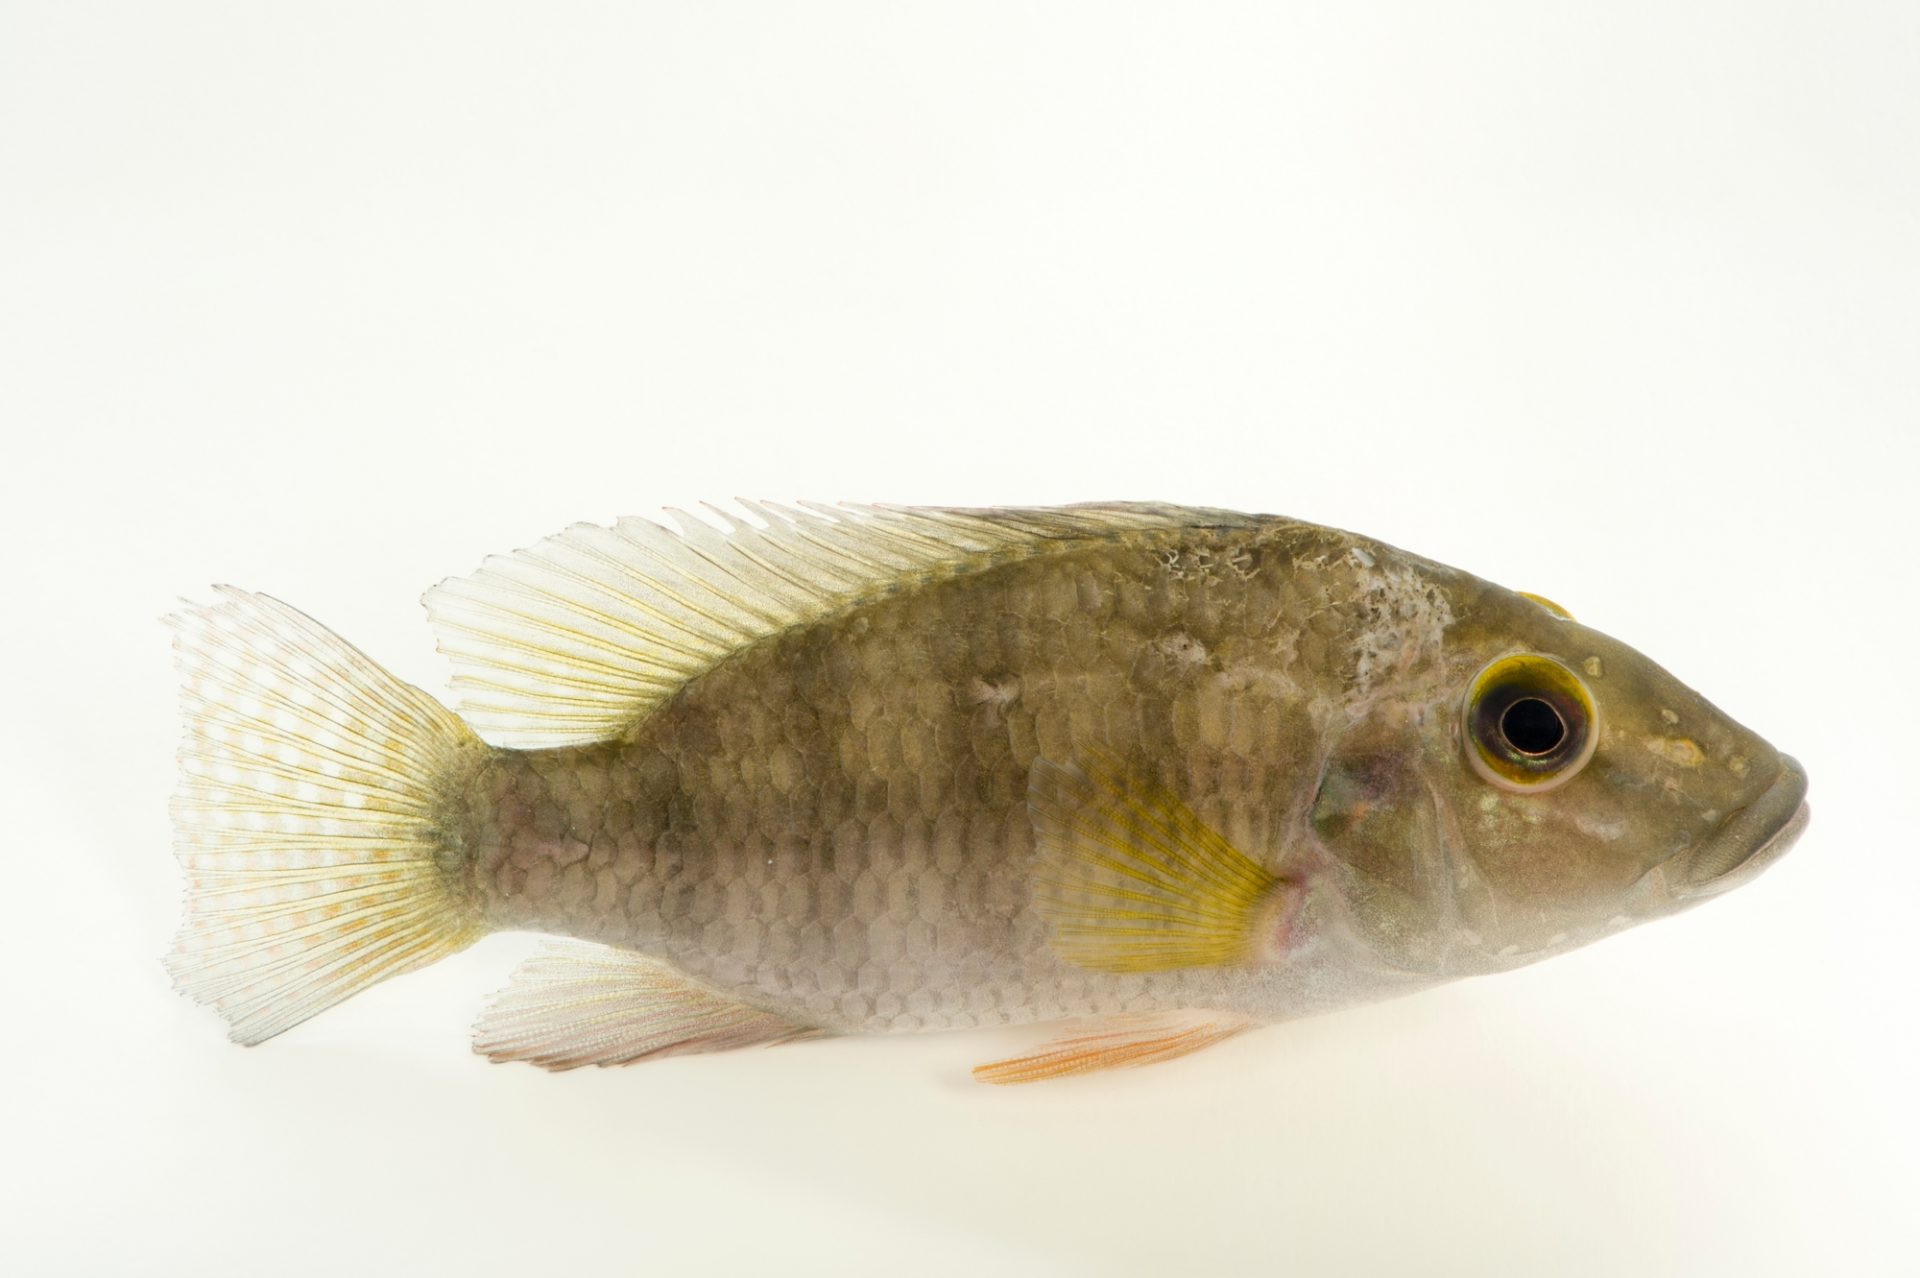 Photo: Chromidotilapia melaniae at L'aquarium tropical du palais de la Porte DorŽe.